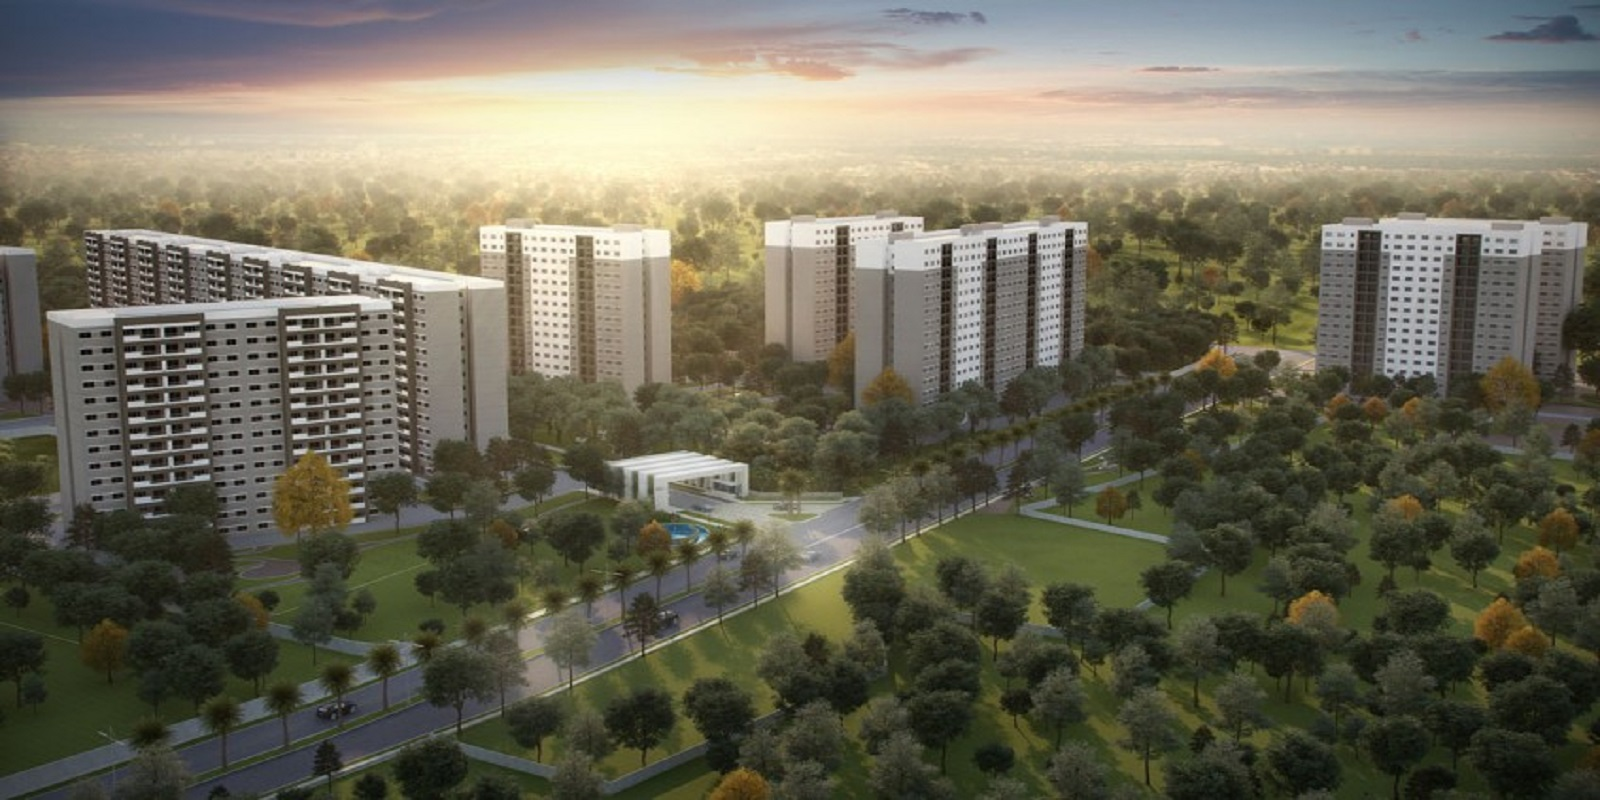 sobha tropical greens phase 21 wing 21 and 22 project large image2